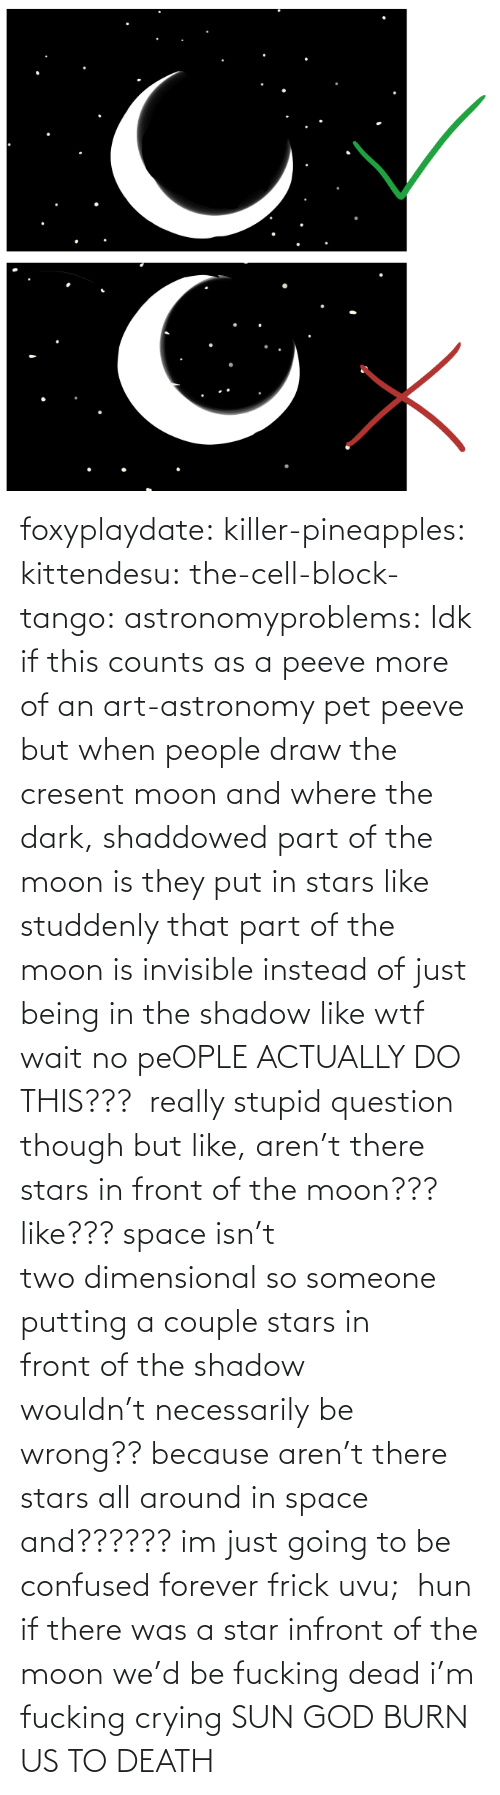 Forever: foxyplaydate: killer-pineapples:  kittendesu:  the-cell-block-tango:  astronomyproblems:  Idk if this counts as a peeve more of an art-astronomy pet peeve but when people draw the cresent moon and where the dark, shaddowed part of the moon is they put in stars like studdenly that part of the moon is invisible instead of just being in the shadow like wtf  wait no peOPLE ACTUALLY DO THIS???   really stupid question though but like, aren't there stars in front of the moon??? like??? space isn't two dimensional so someone putting a couple stars in front of the shadow wouldn't necessarily be wrong?? because aren't there stars all around in space and?????? im just going to be confused forever frick uvu;   hun if there was a star infront of the moon we'd be fucking dead  i'm fucking crying    SUN GOD BURN US TO DEATH